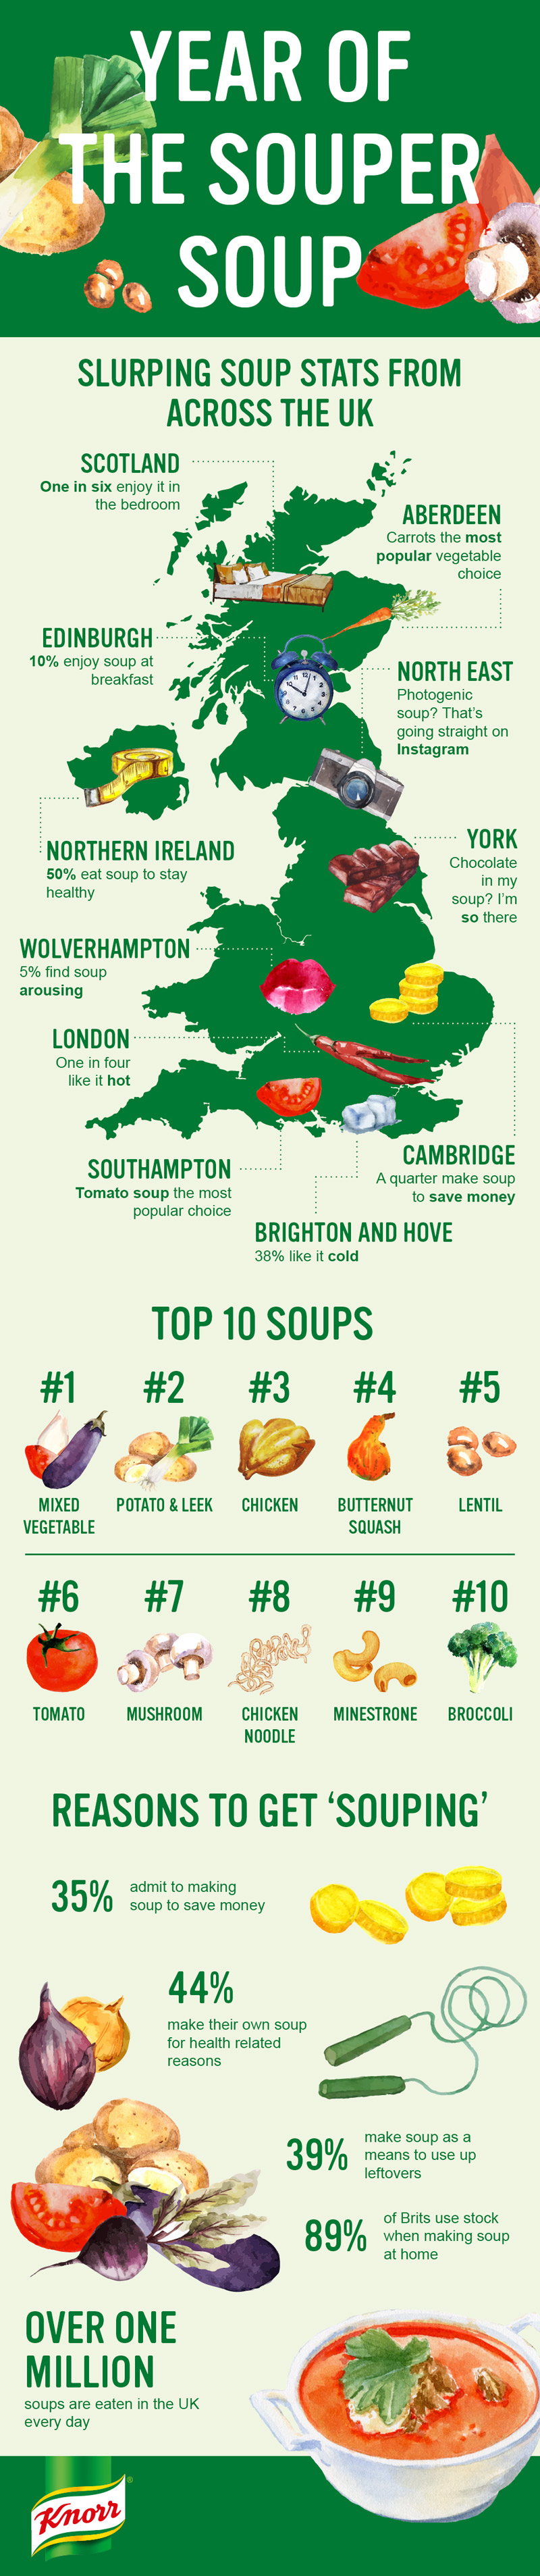 Souper soup infographic for Knorr